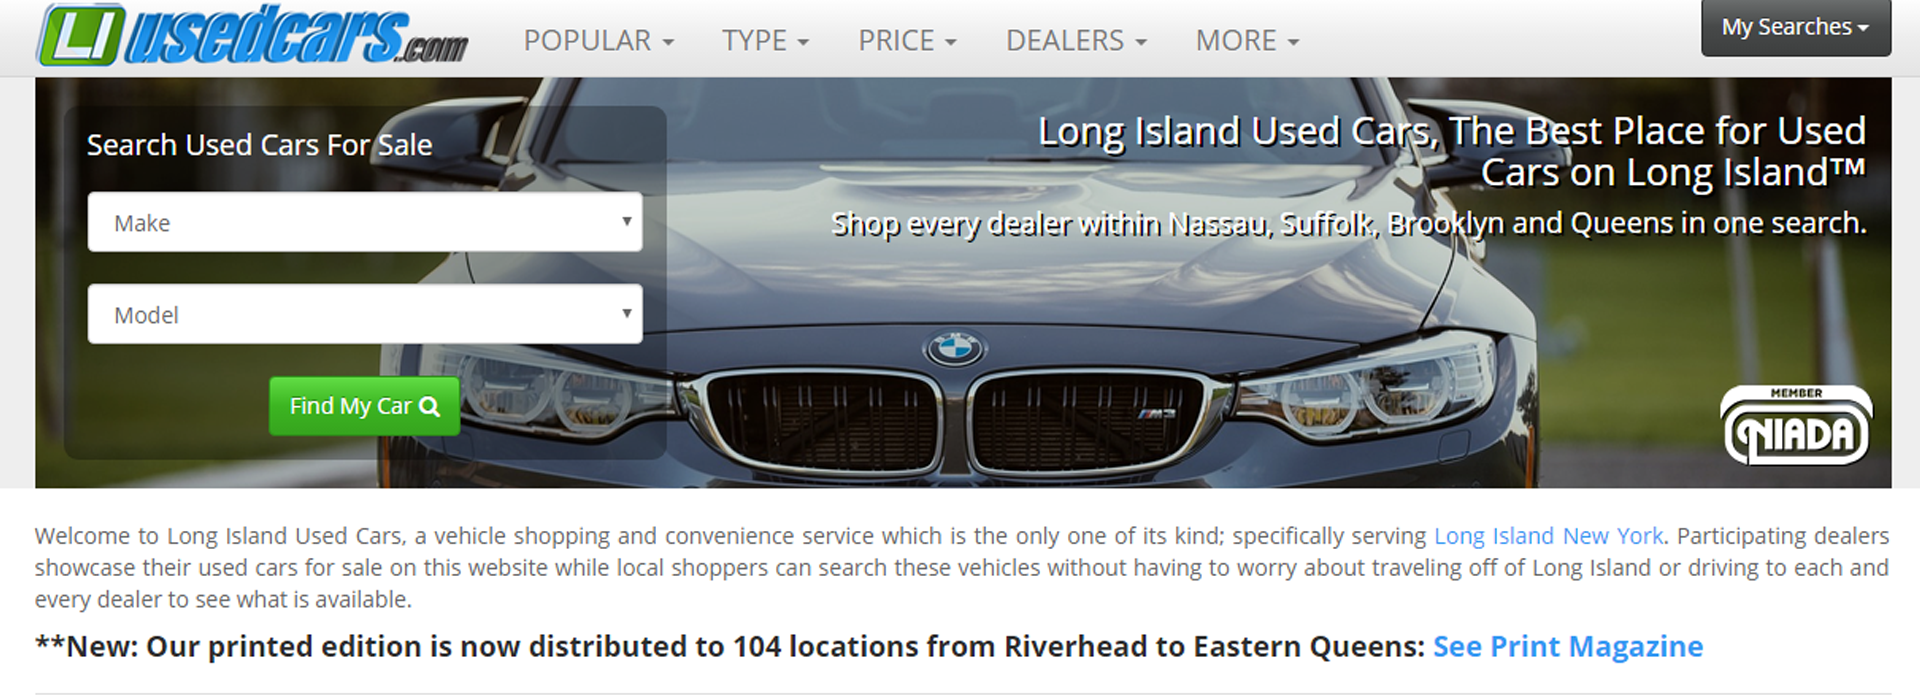 LIUsedCars.com - The Best Place for Used Cars on Long Island by ...